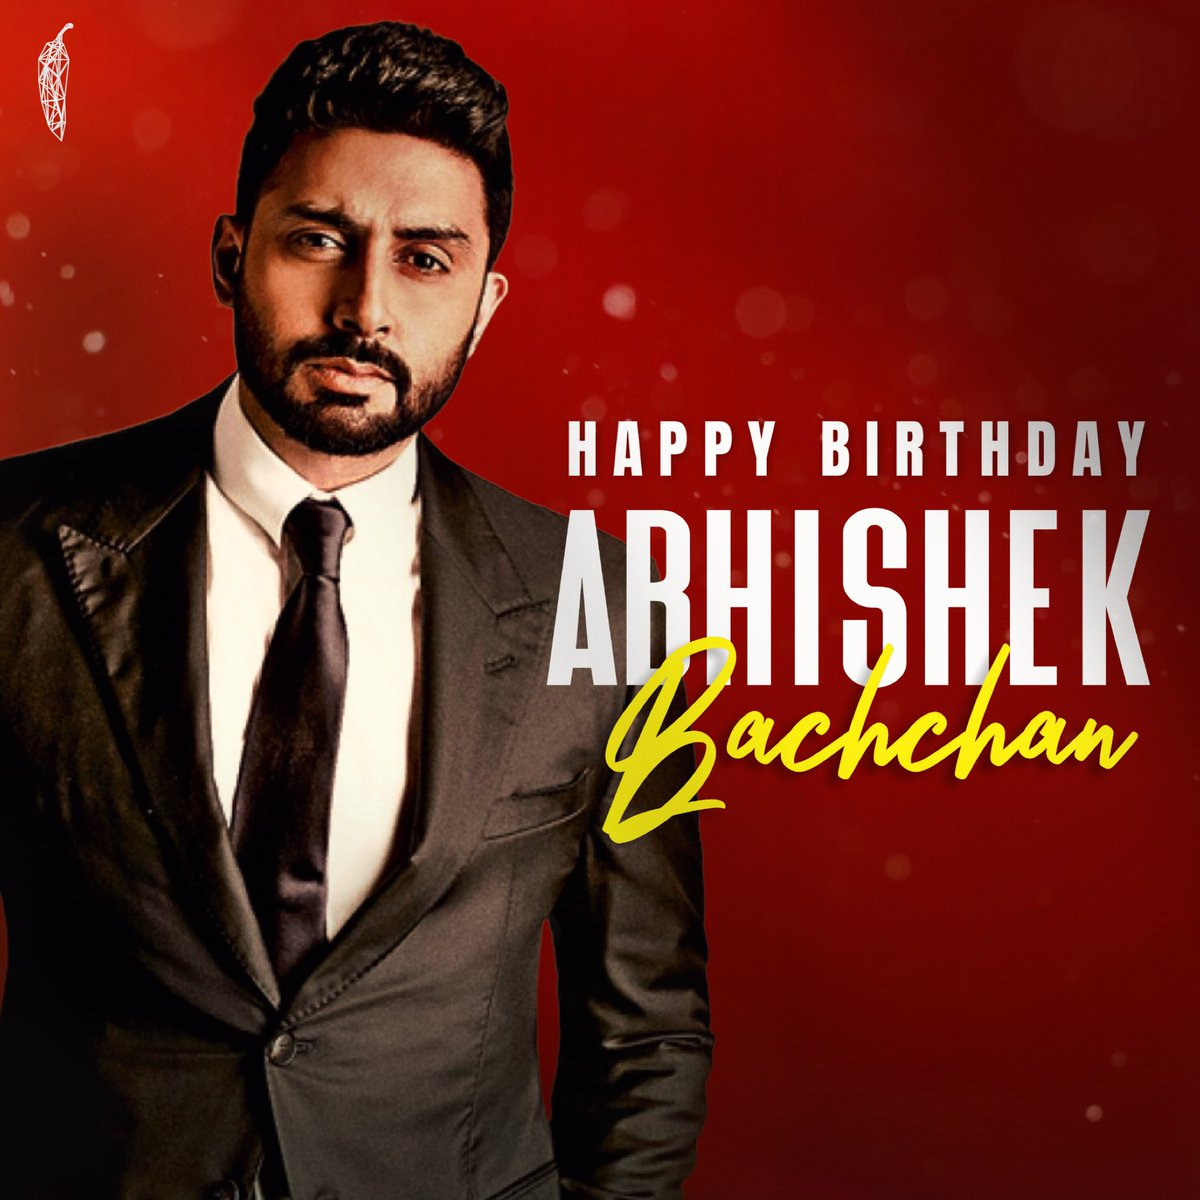 Charming. Witty. Charismatic.😎  Wishing Abhishek Bachchan (@juniorbachchan ) #HappyBirthday and a marvellous 2021! Eagerly looking forward to #BobBiswas! 🤩  Drop your birthday wishes in the comments below!  -🌶🎂🎉